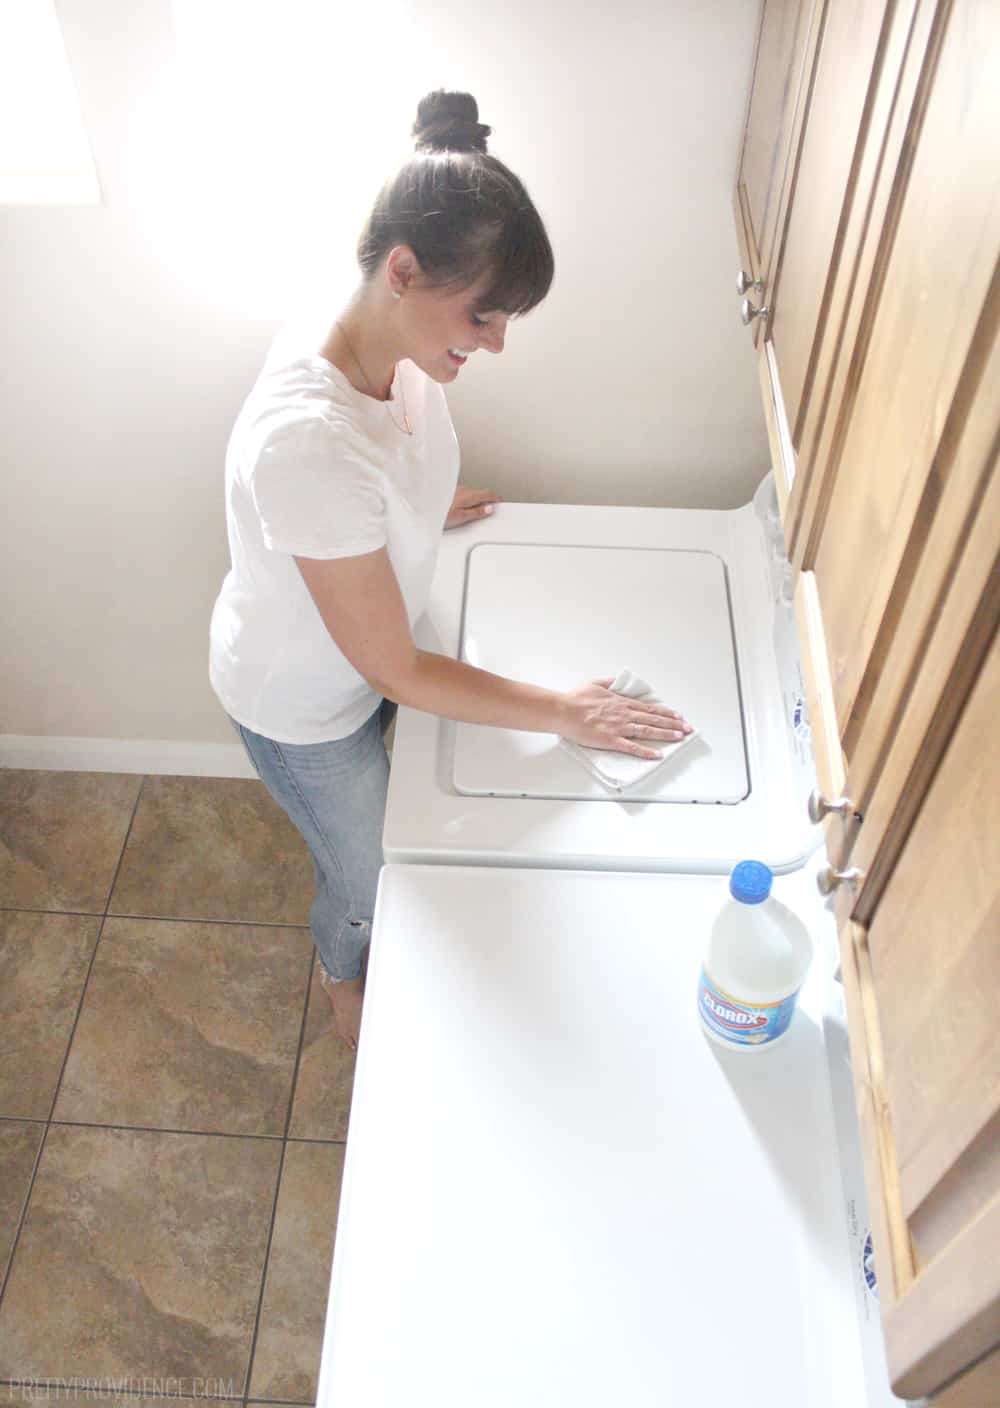 You may have wondered if washing machines needed to be cleaned out? Well, they do! Here is how to clean your washing machine, quick and easy!